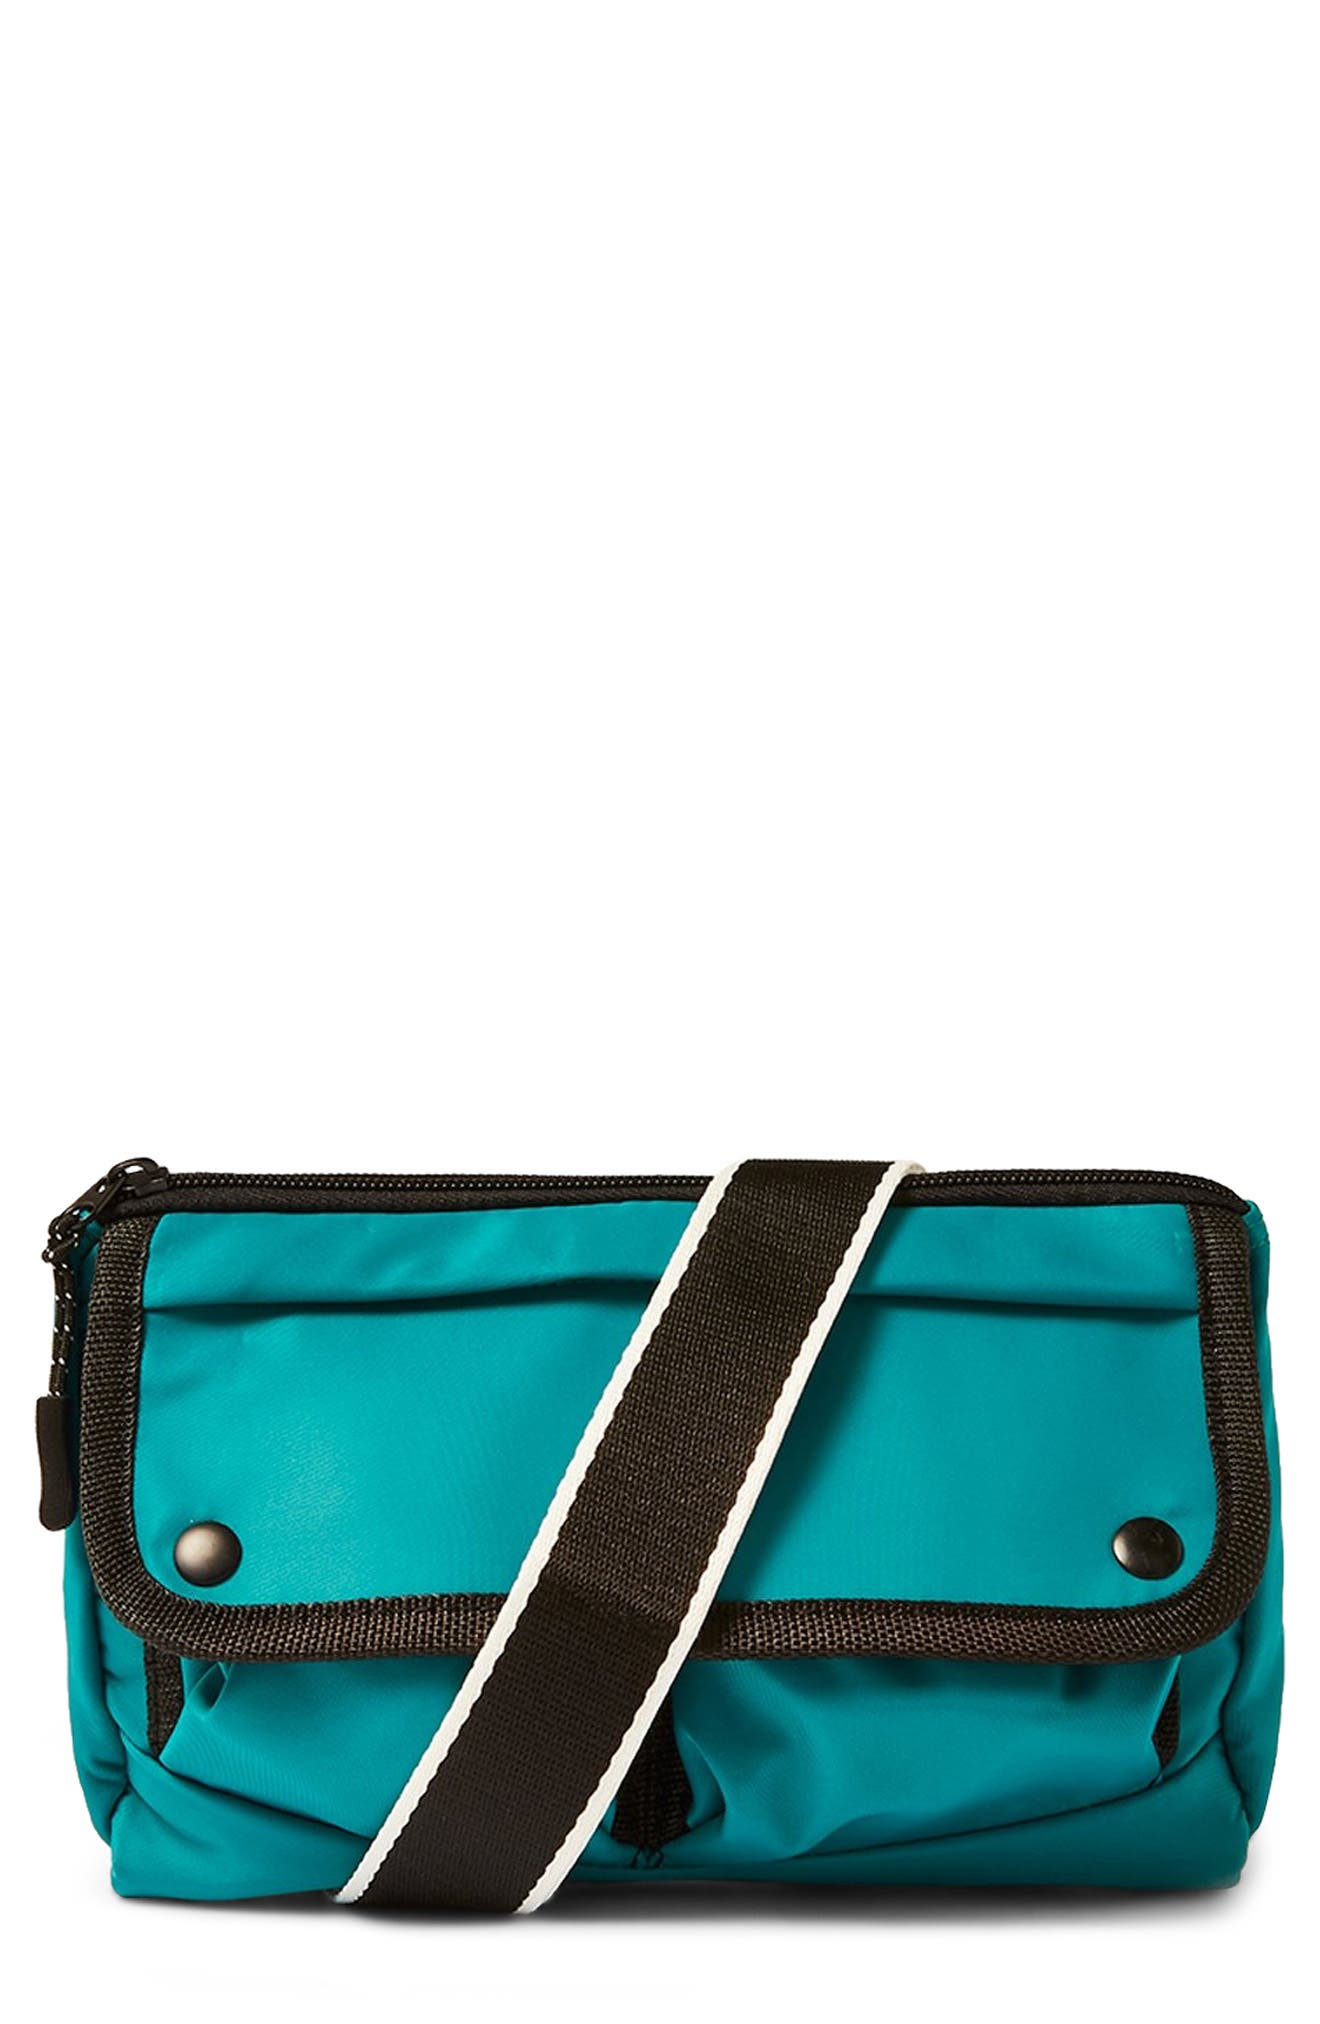 Sabre Crossbody Belt Bag,                             Main thumbnail 1, color,                             DARK BLUE